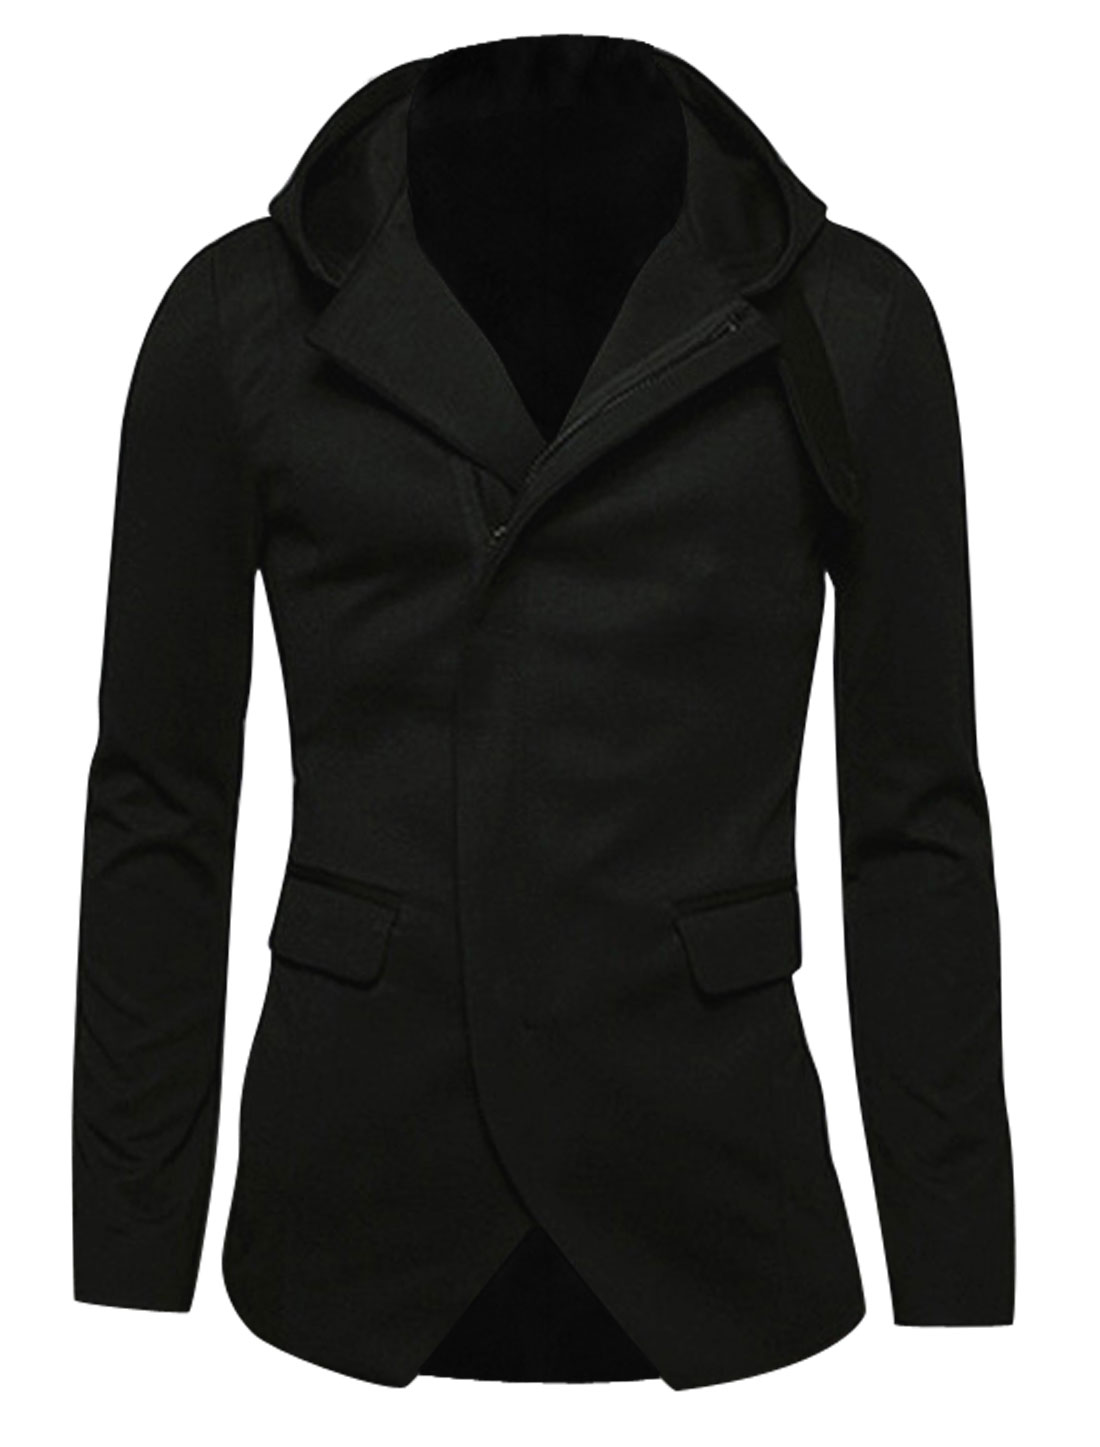 Hooded Zip Closure Long Sleeves Casual Jacket for Men Black M